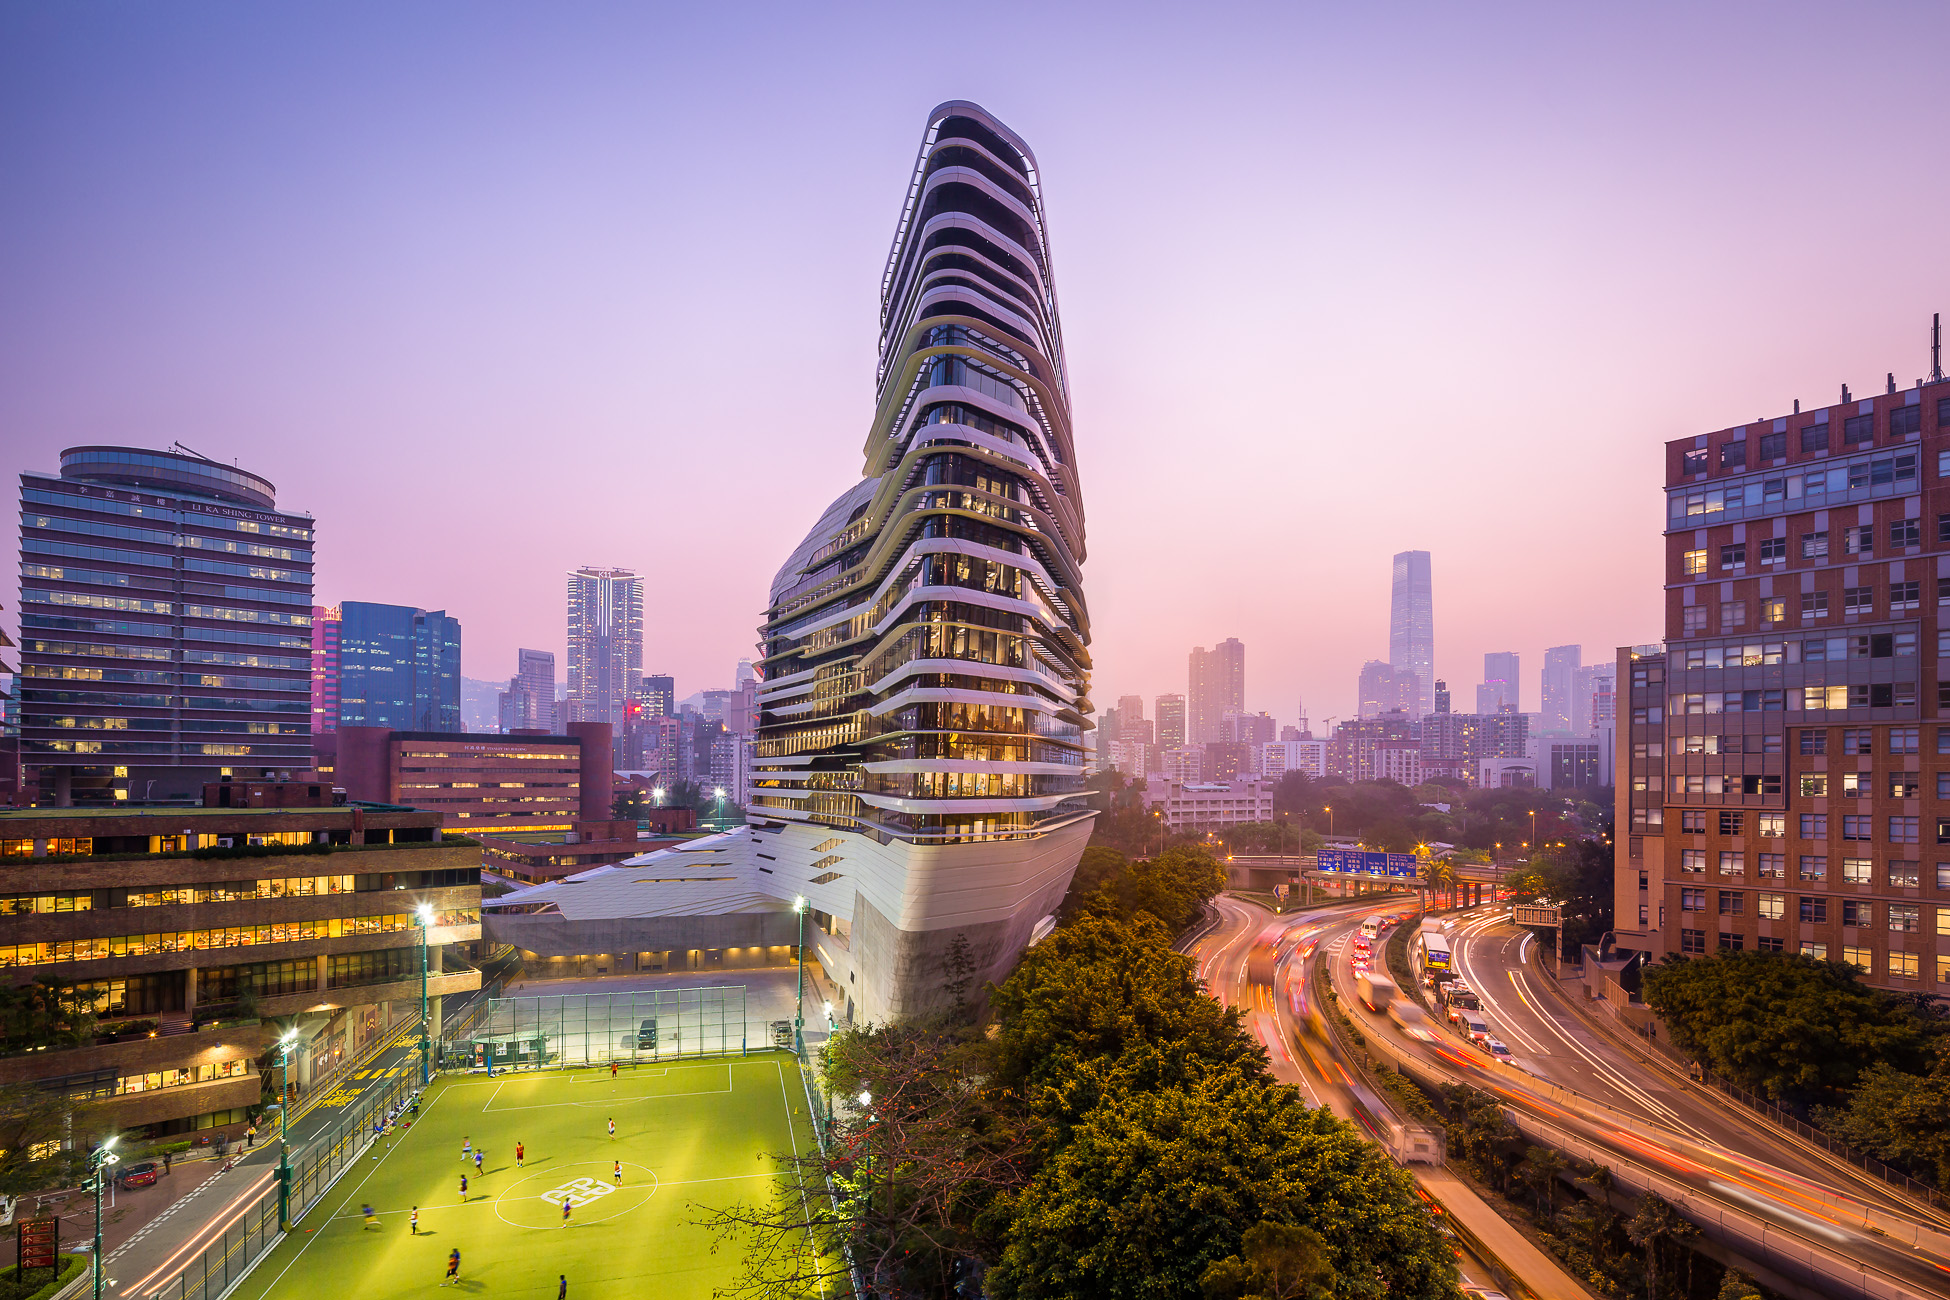 zaha_hadid_patrik_schumacher_innovation_tower_hong kong_poly_doublespace_architecture